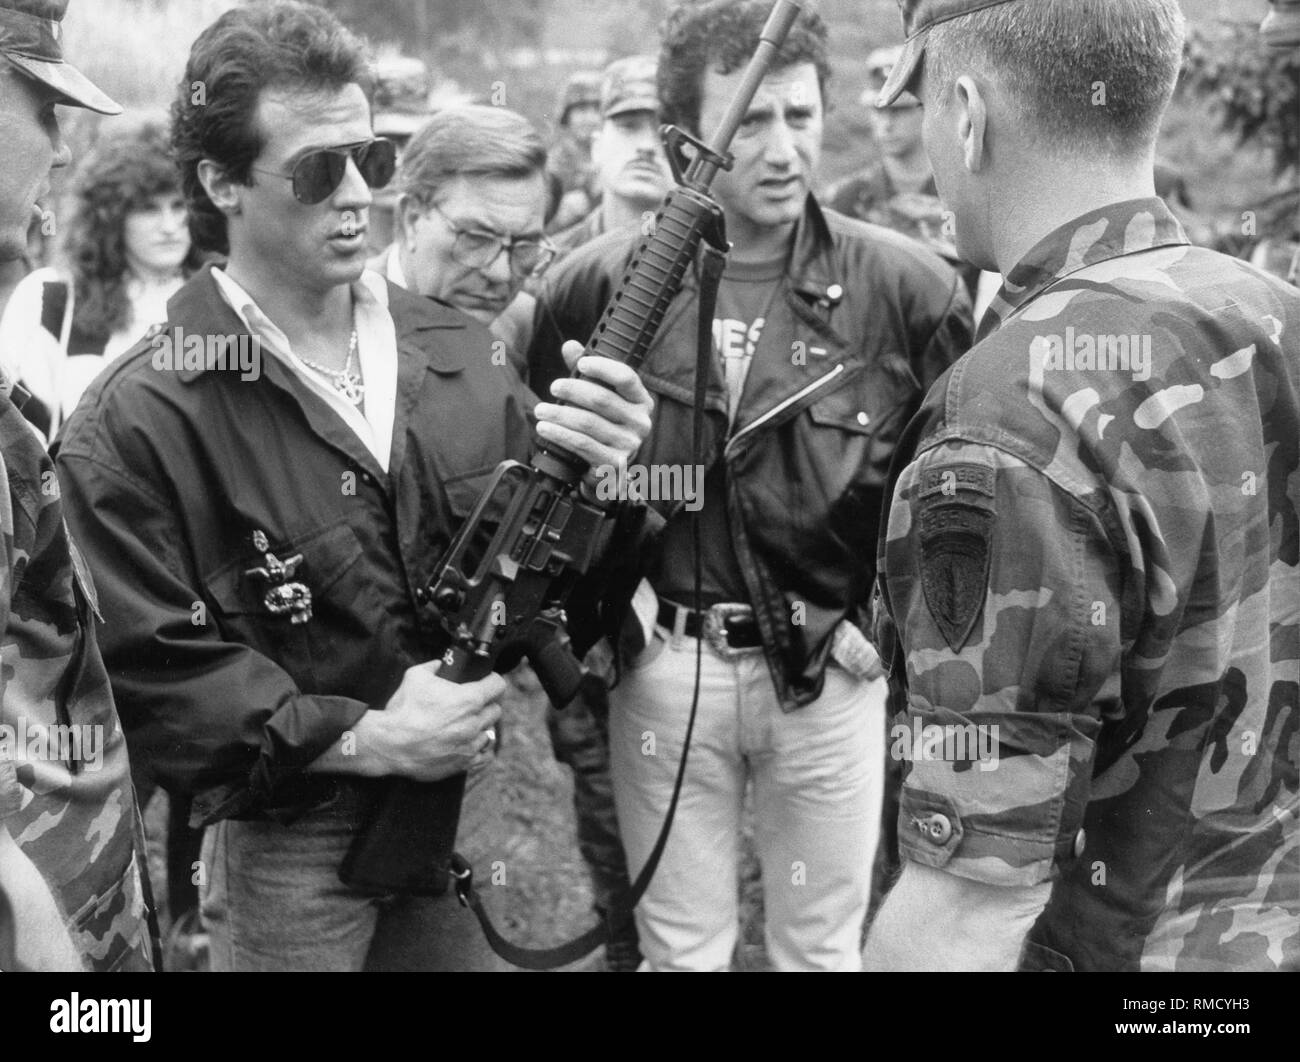 The actor Sylvester Stallone visits American troops in Berlin and here handles an M-16 assault rifle. Right of Sylvester in the background, his brother Frank. - Stock Image